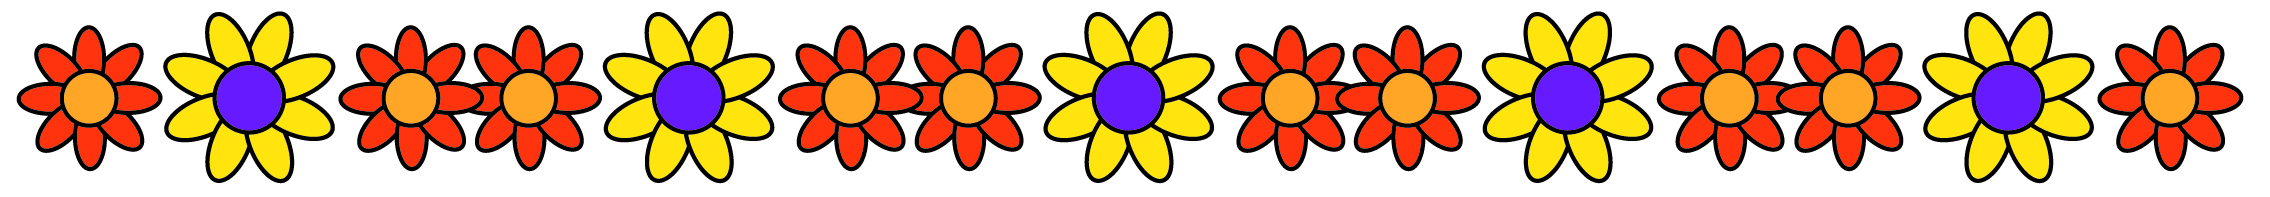 clipart line flower - photo #16